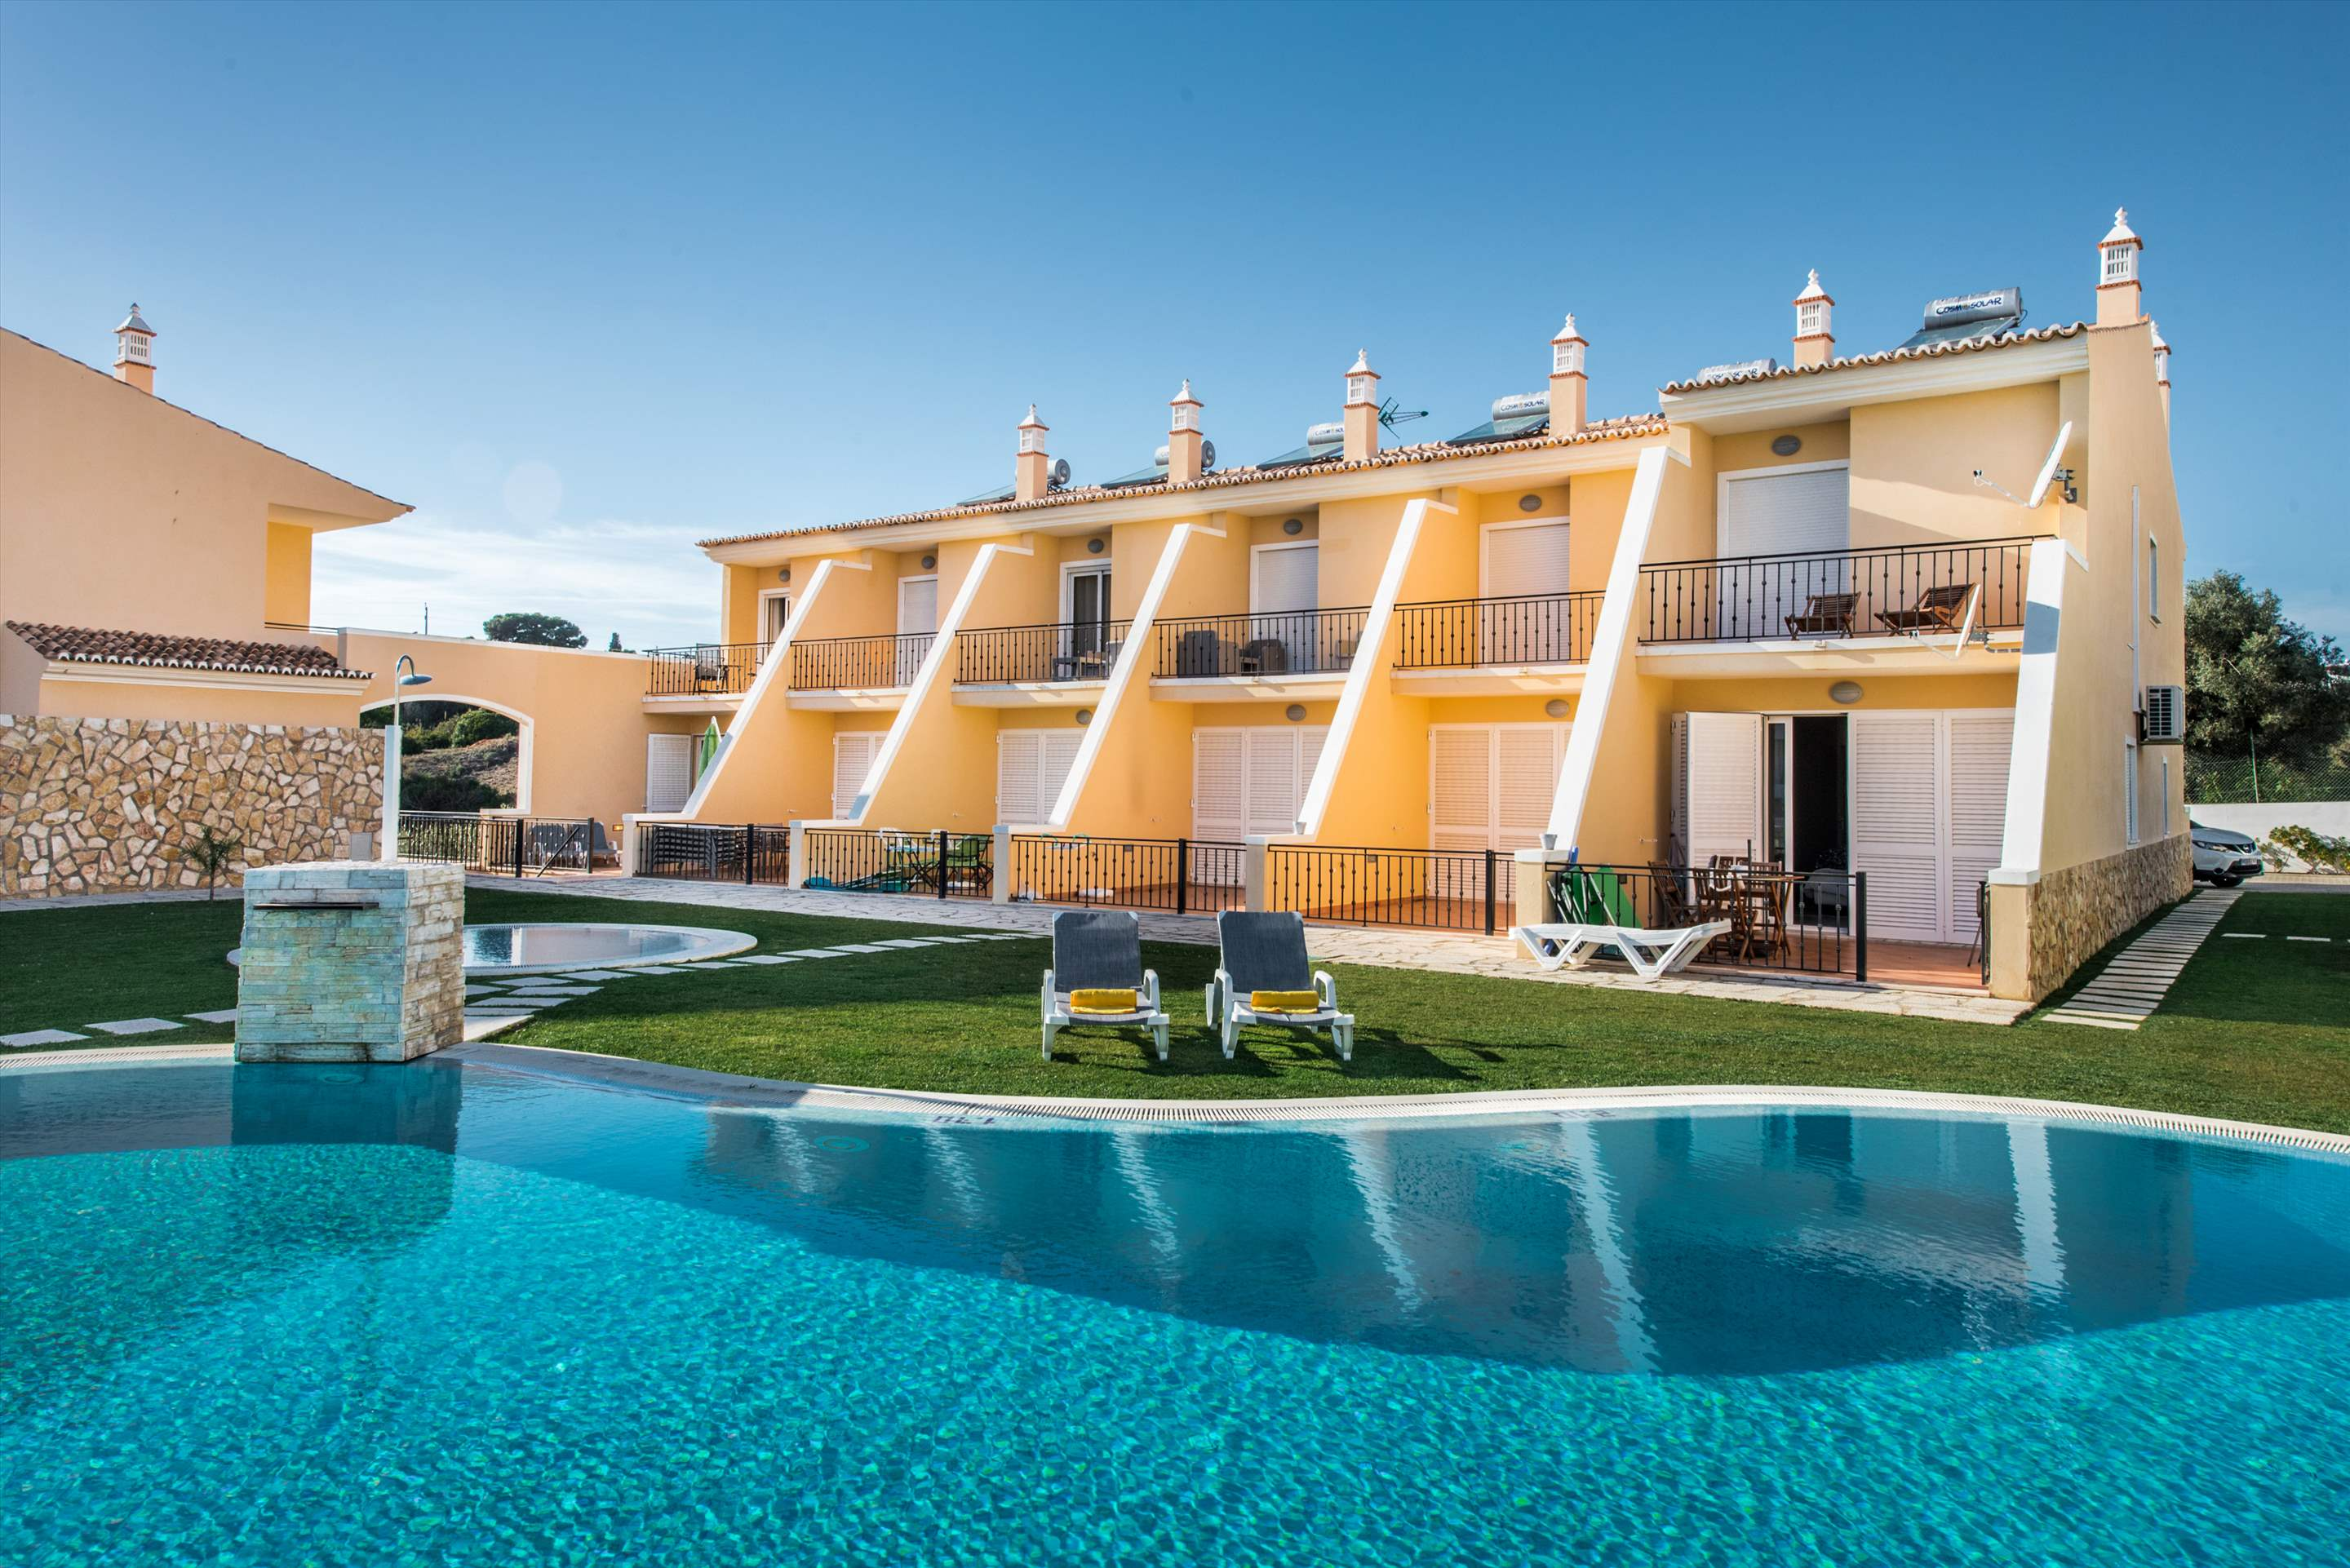 Townhouse Rosal 'D', 2 bedroom villa in Gale, Vale da Parra and Guia, Algarve Photo #1